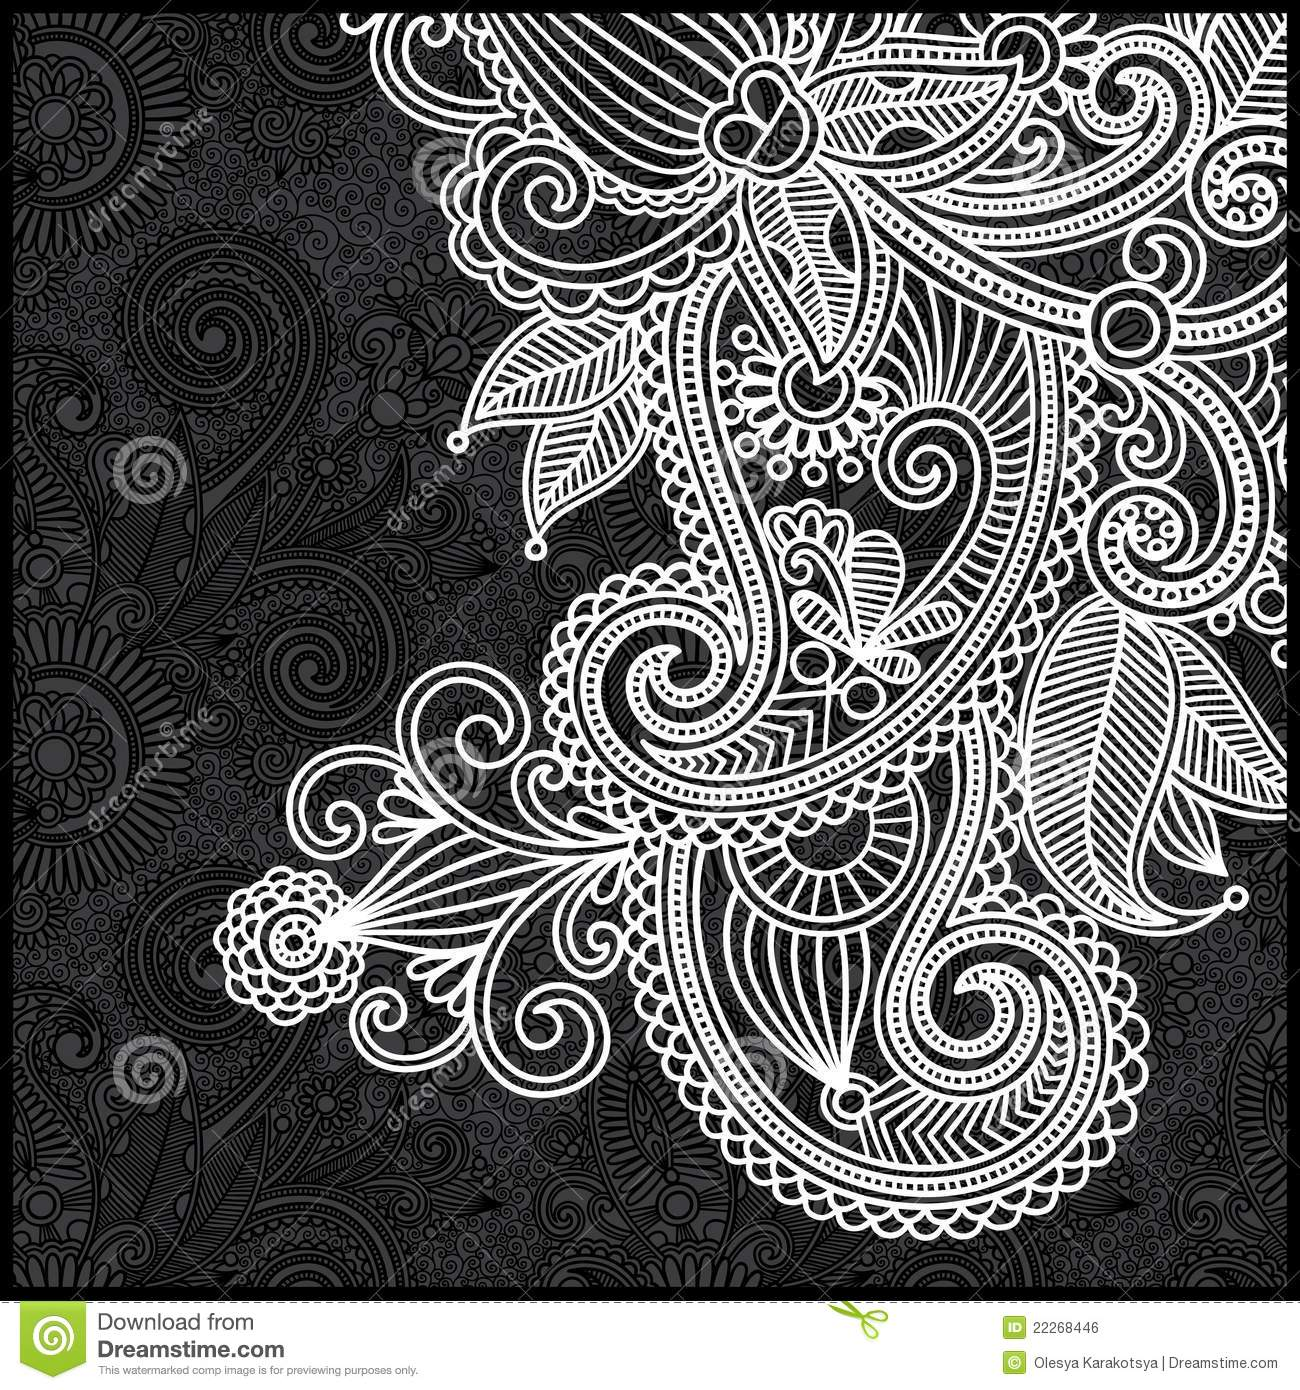 Floral Black And White Black and white floral patternGothic Floral Pattern